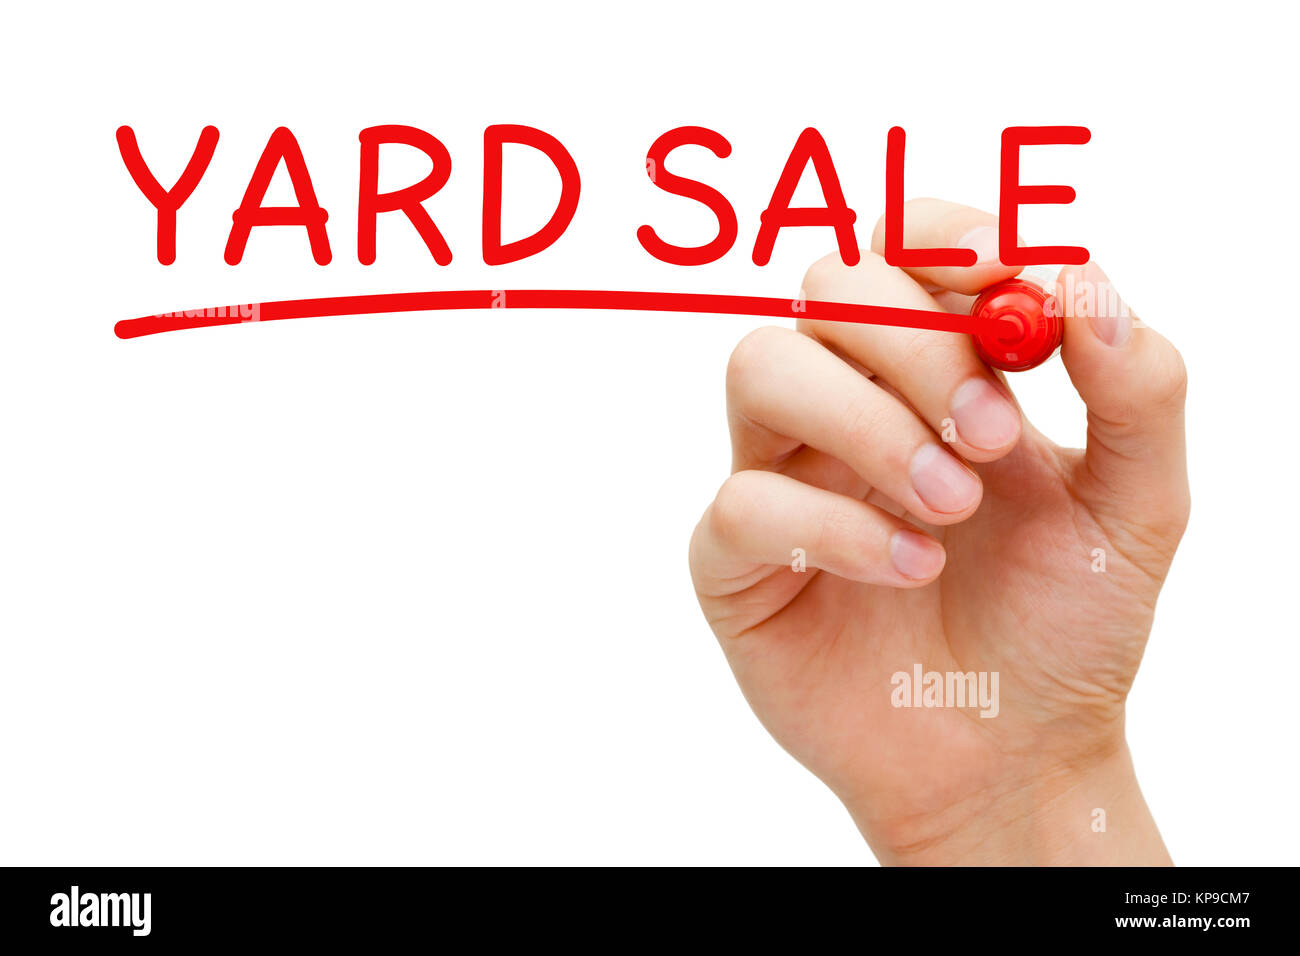 Yard Sale Hand Red Marker Stock Photo